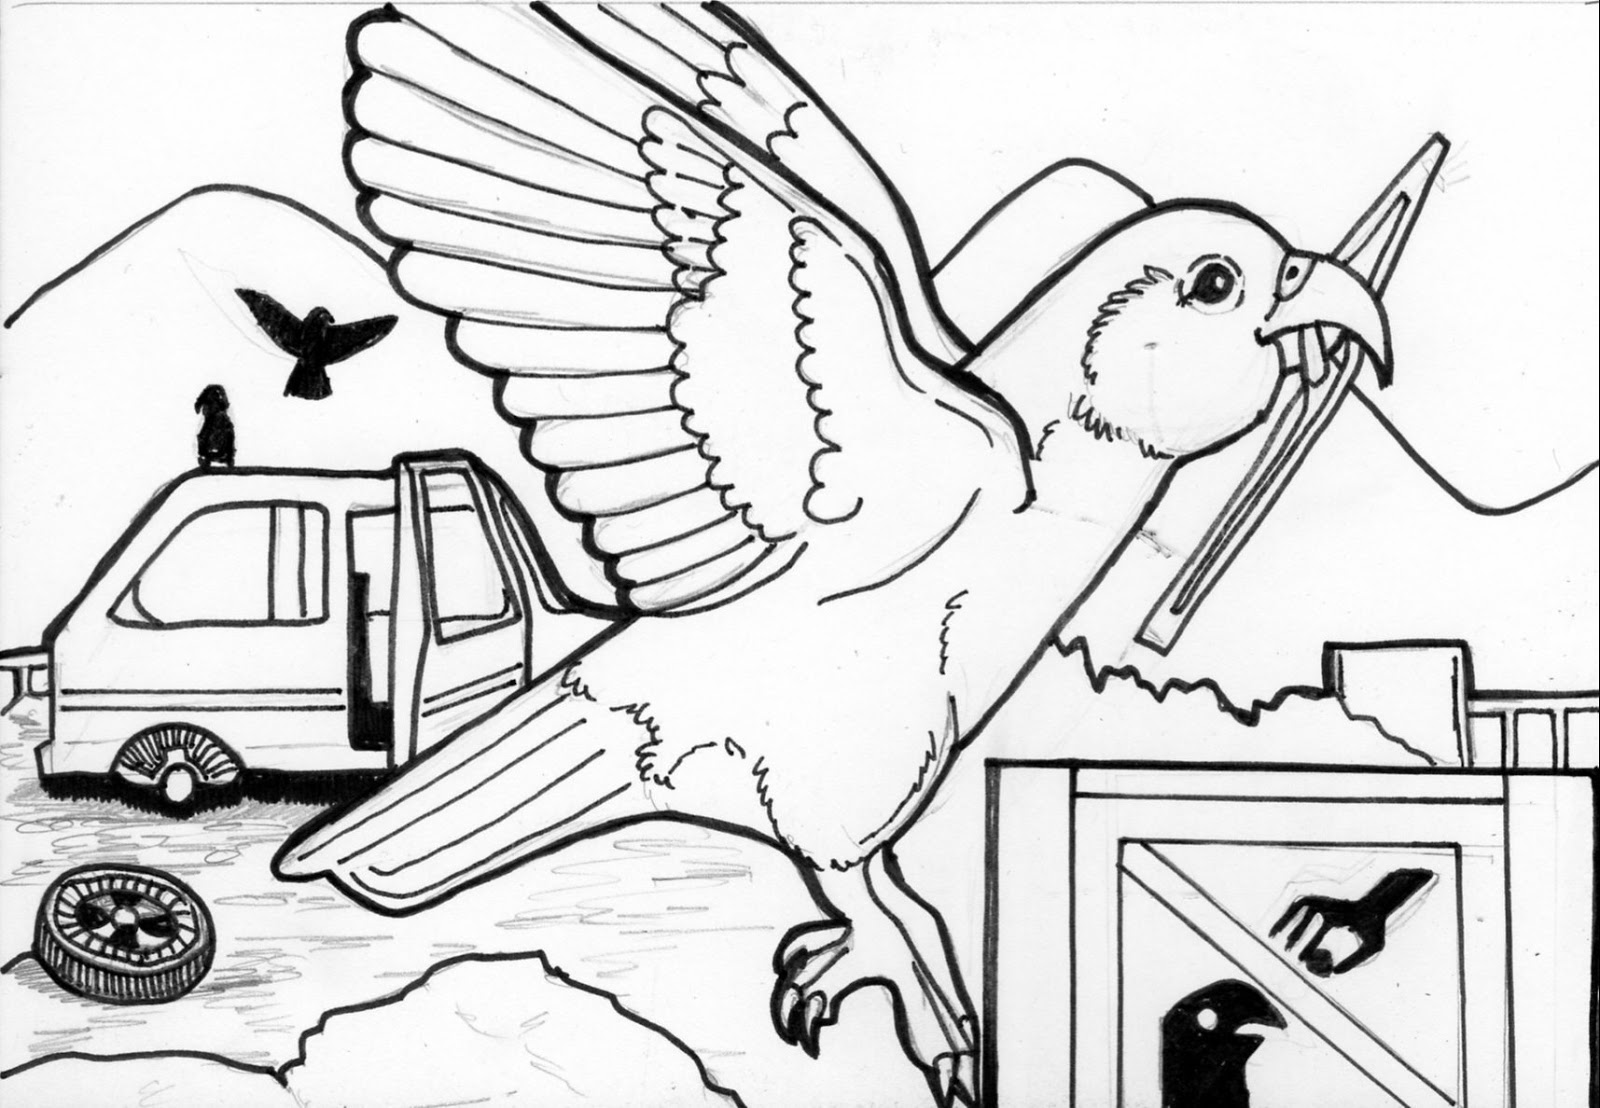 More Colouring Pages Thinking Of Cleaning These Up And Printing Them Out To Take The Market On Saturday Good Way Advertise